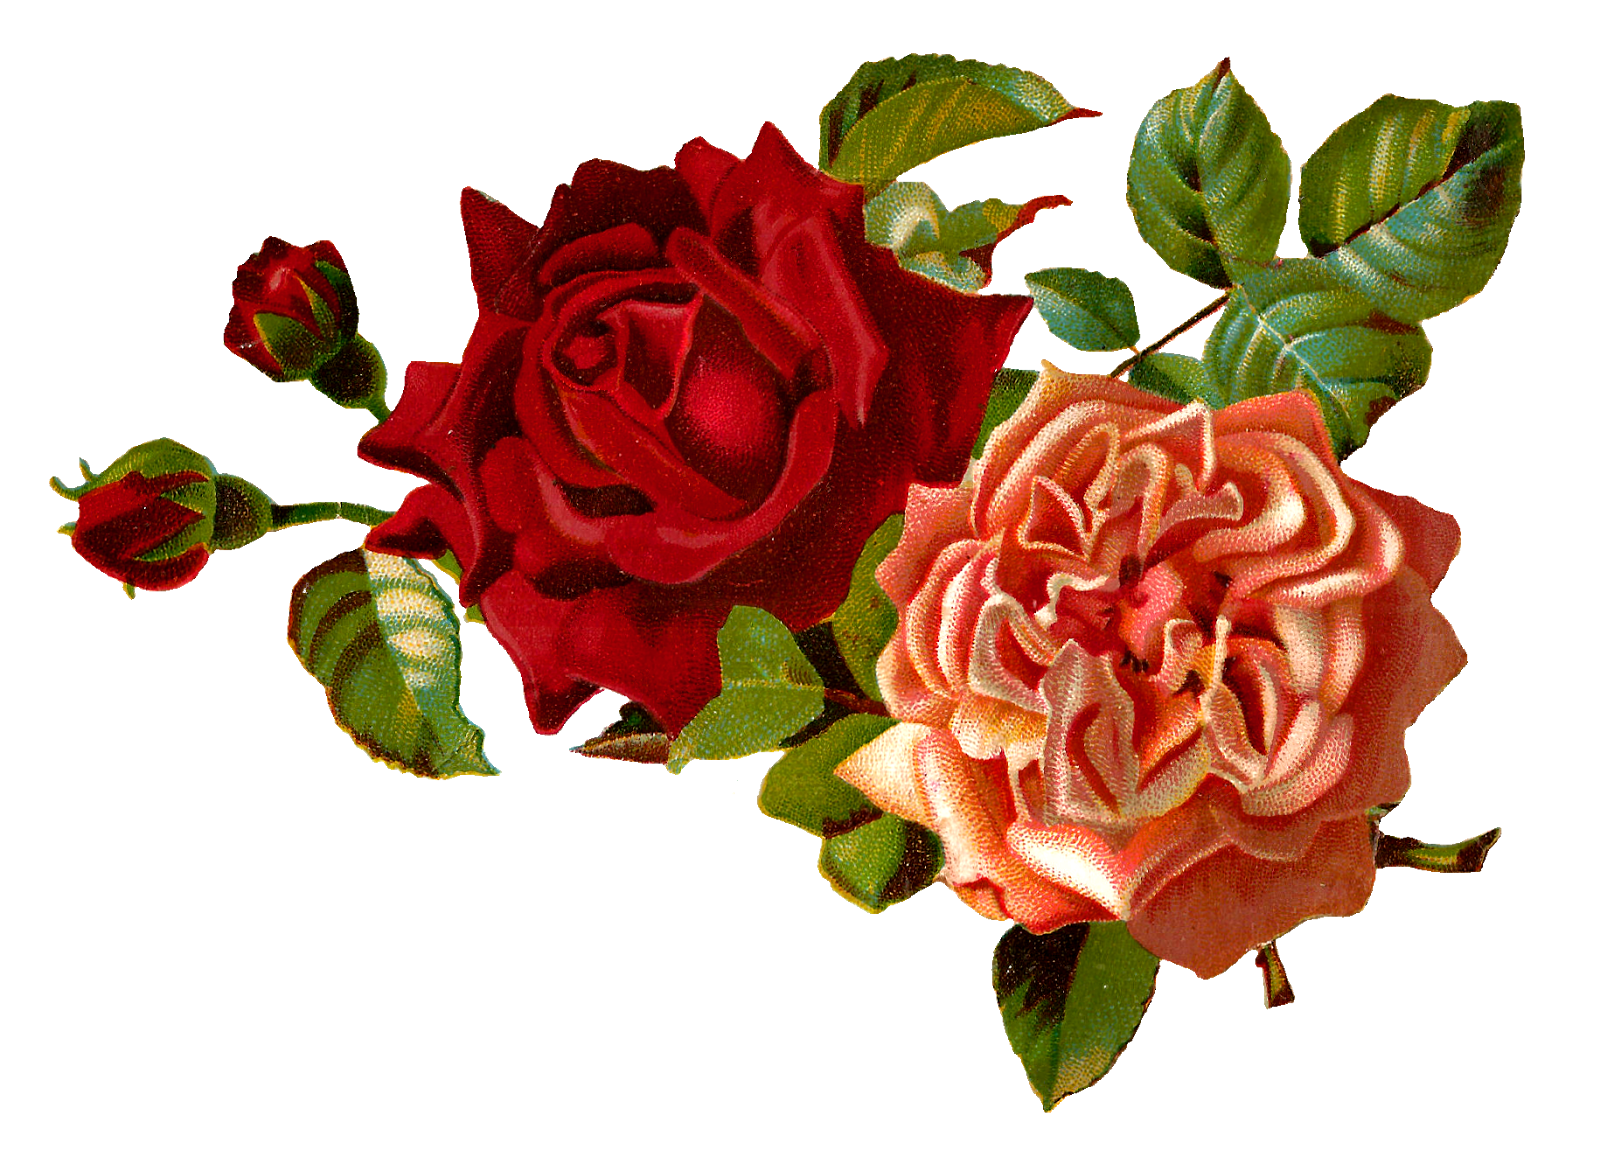 Vintage Roses Images Clipart | Free download on ClipArtMag